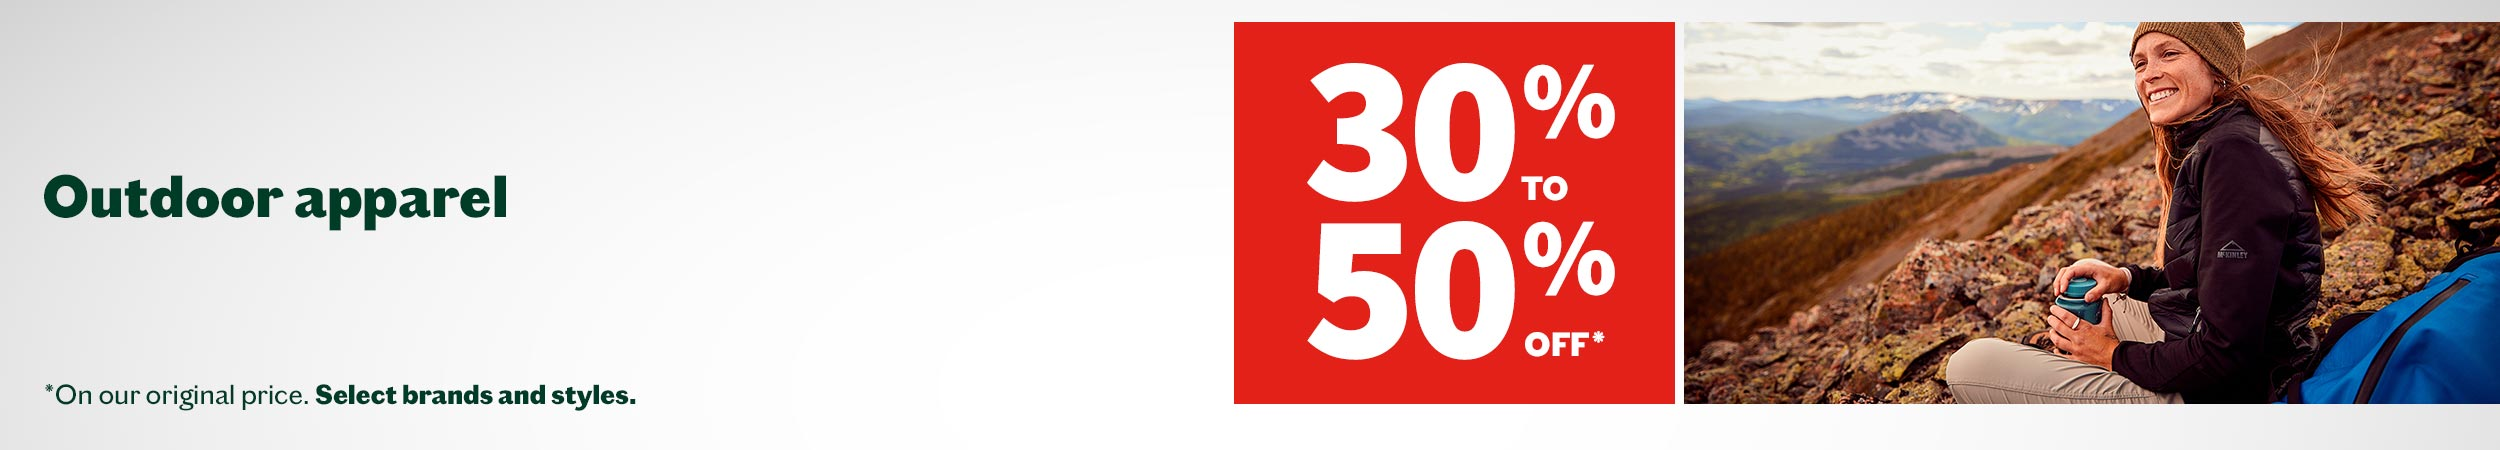 Take 30% to 50% off outdoor apparel